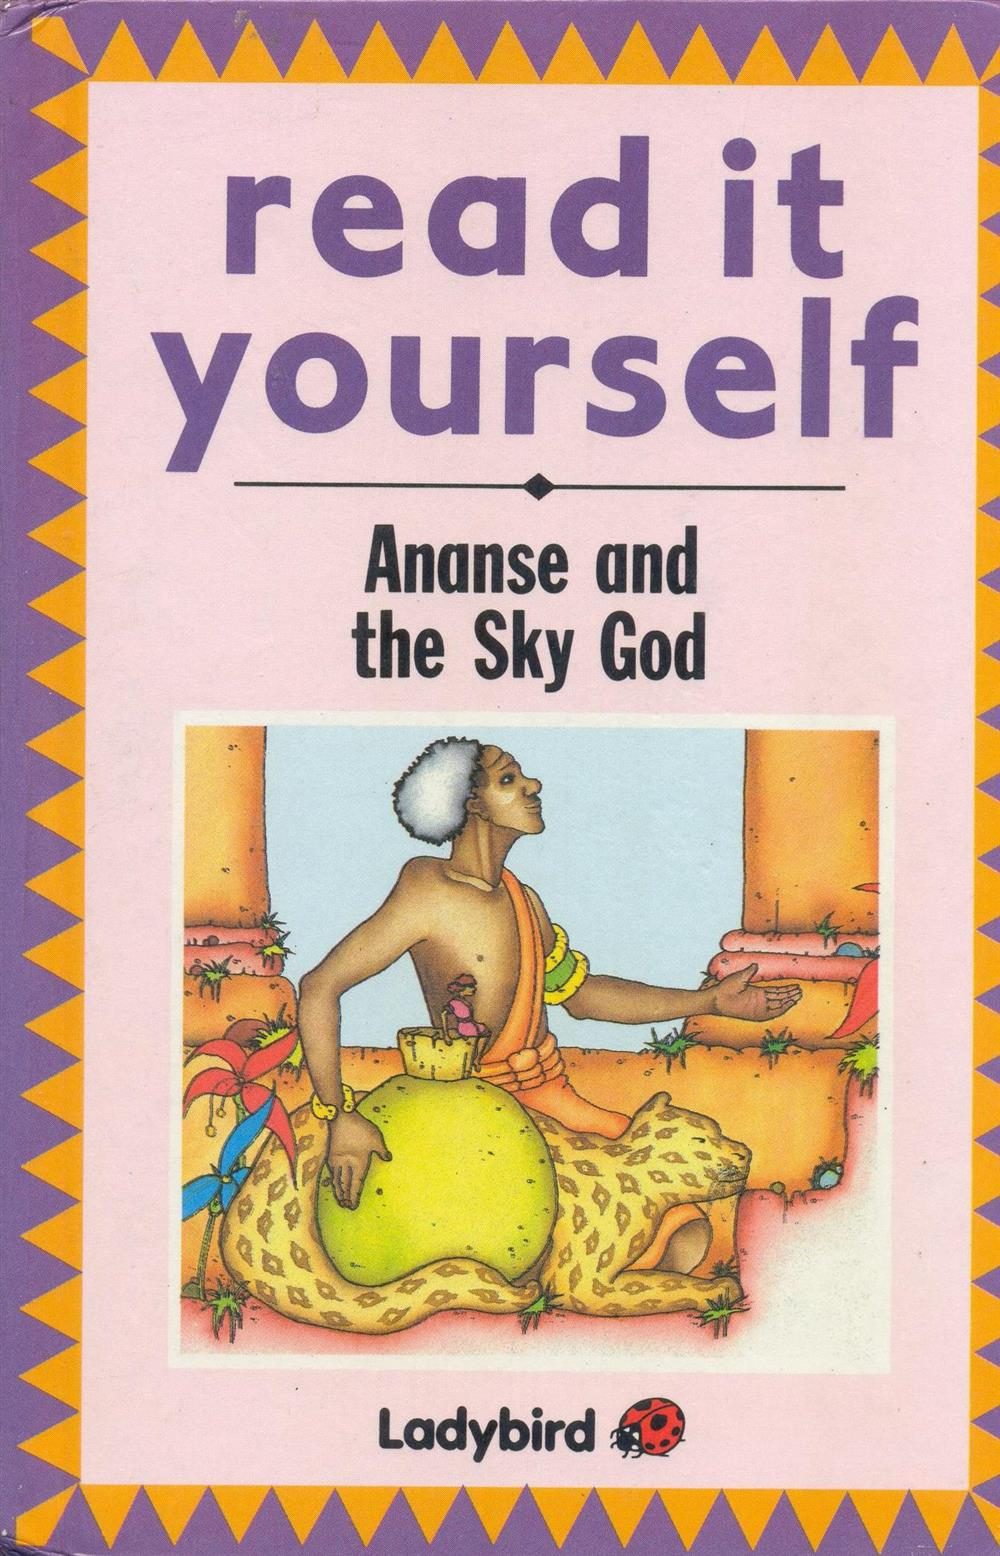 Ananse and the sky god 001.jpg